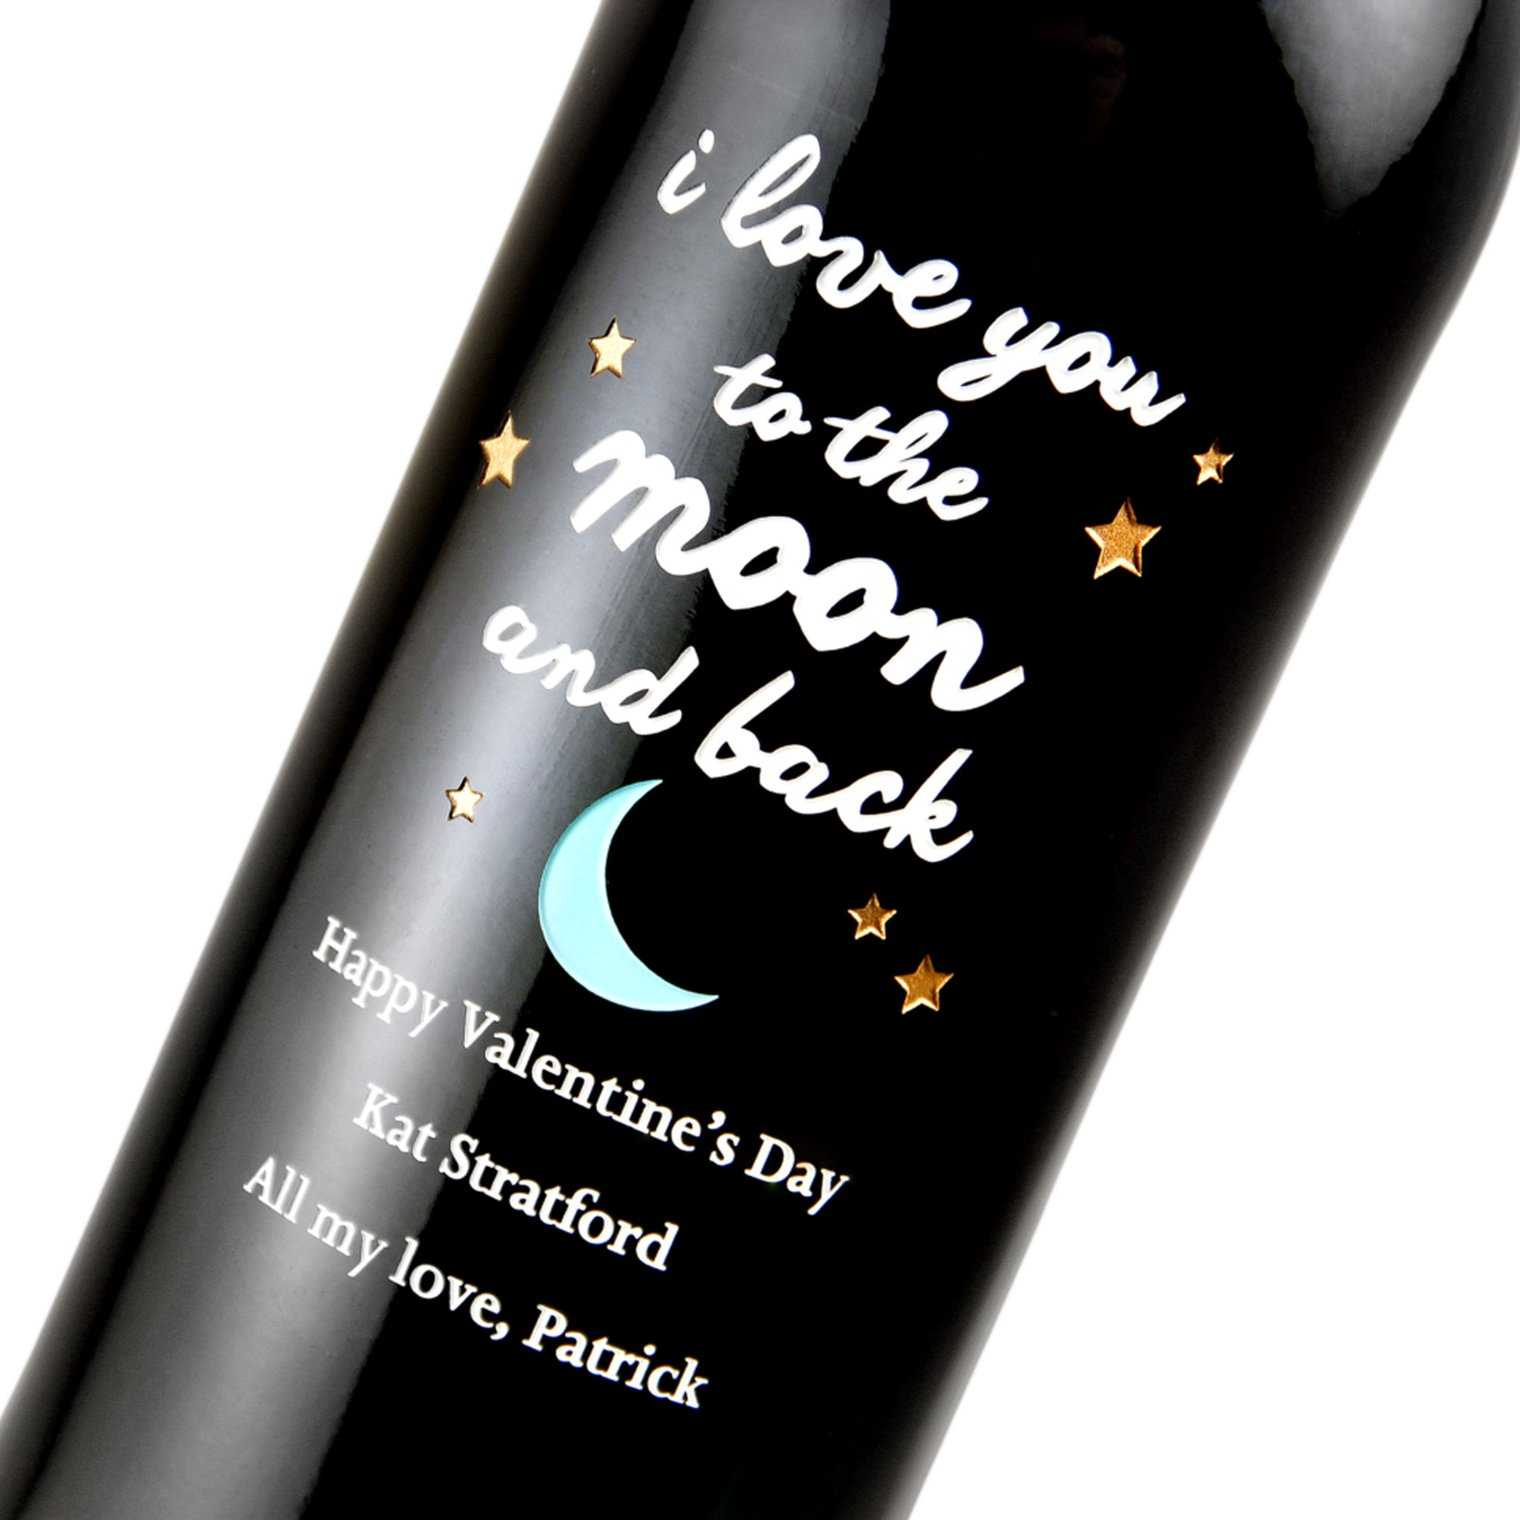 Custom Valentine's Day wine gift by Etching Expressions